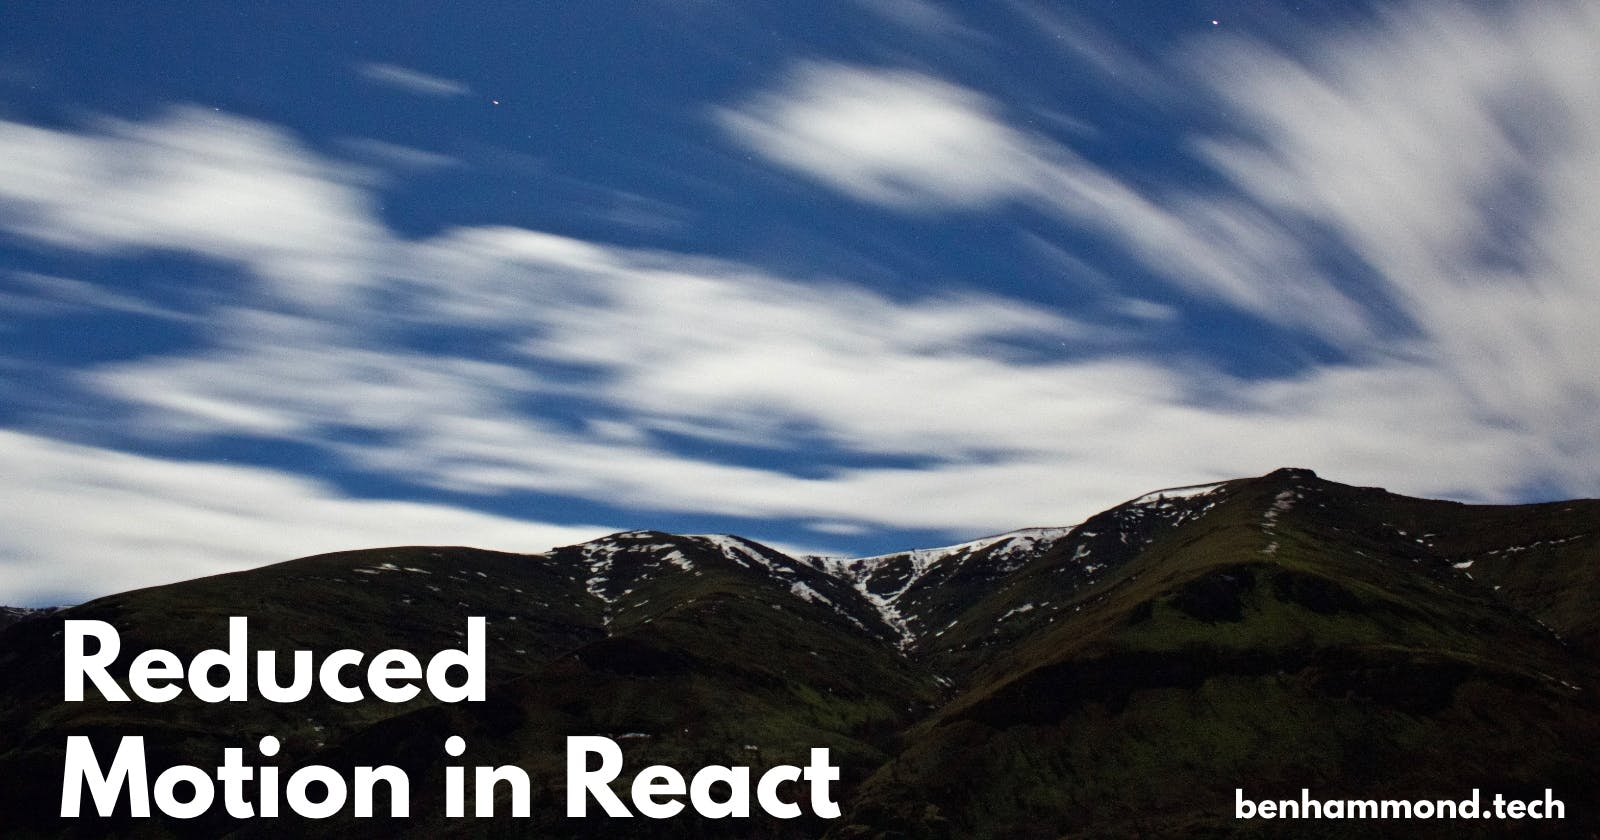 Honoring Reduced Motion Preferences in React